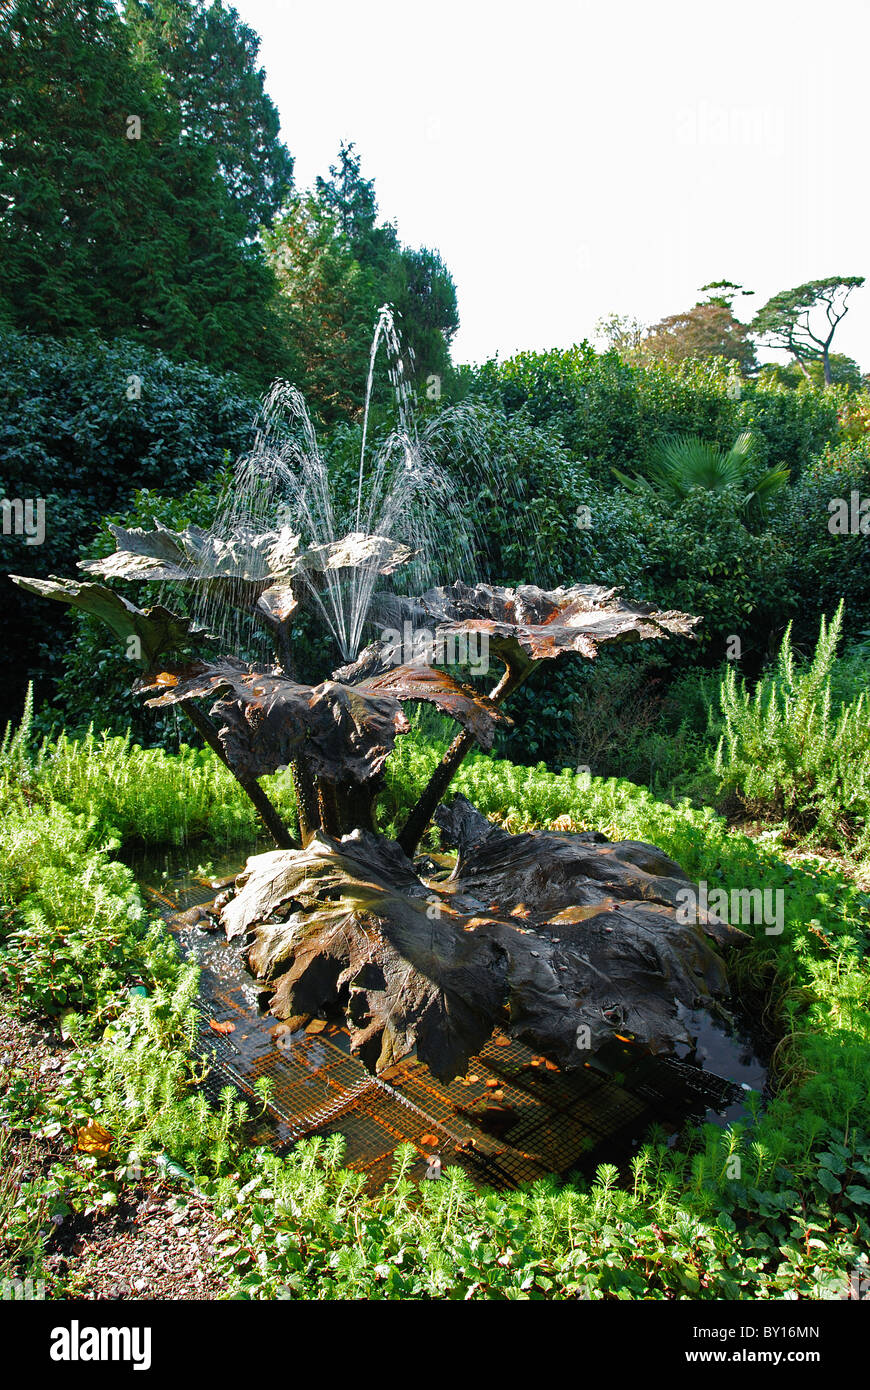 A copper sculptured fountain at Trebah gardens, near Falmouth in Cornwall, UK - Stock Image